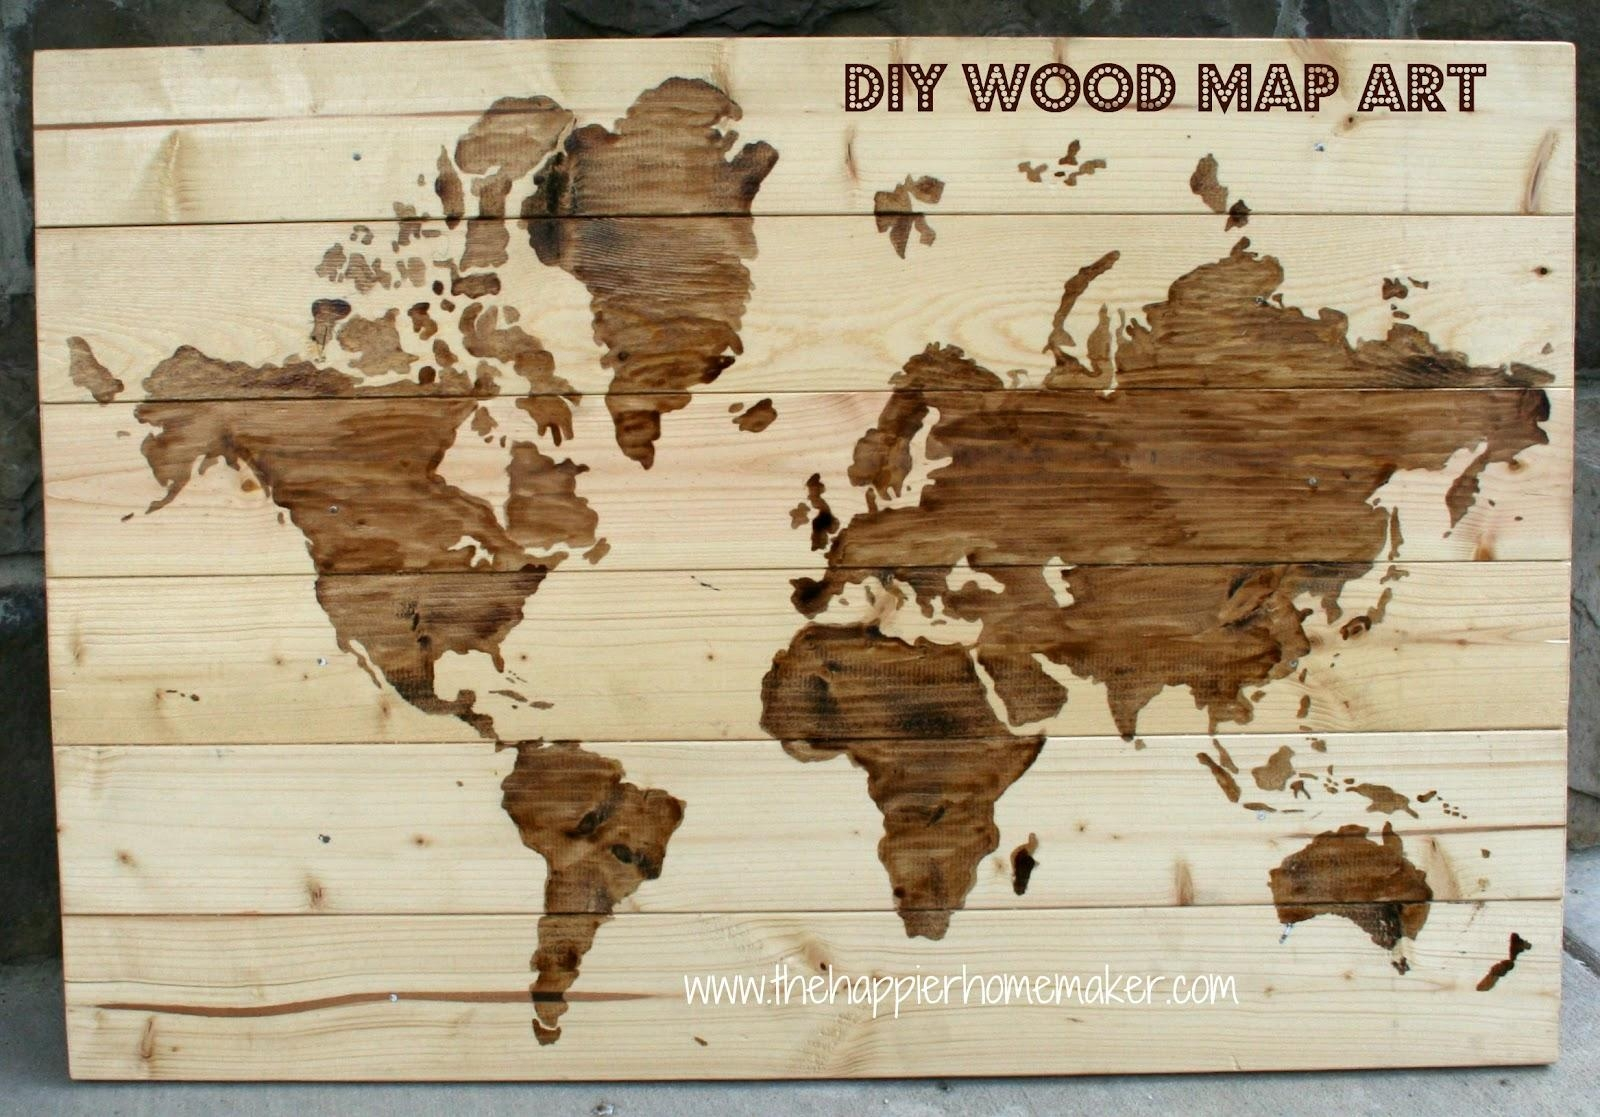 Diy Wooden World Map Art | The Happier Homemaker For World Map Wood Wall Art (View 8 of 20)